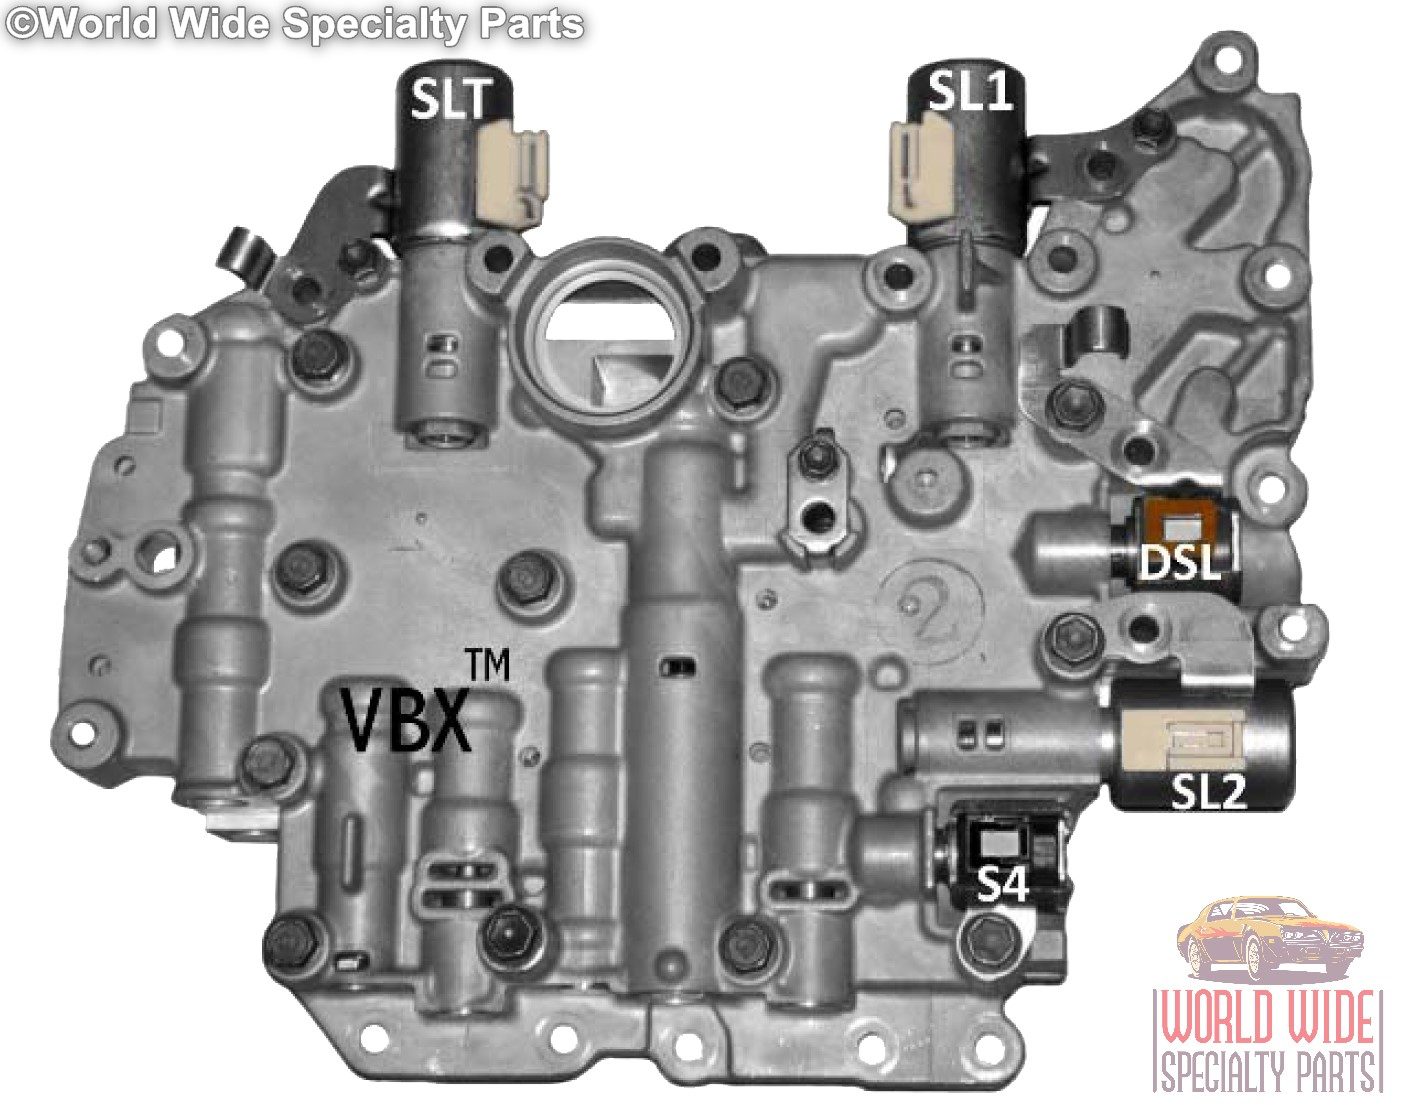 Toyota Highlander Service Manual: Front differential oil seal (U241E)